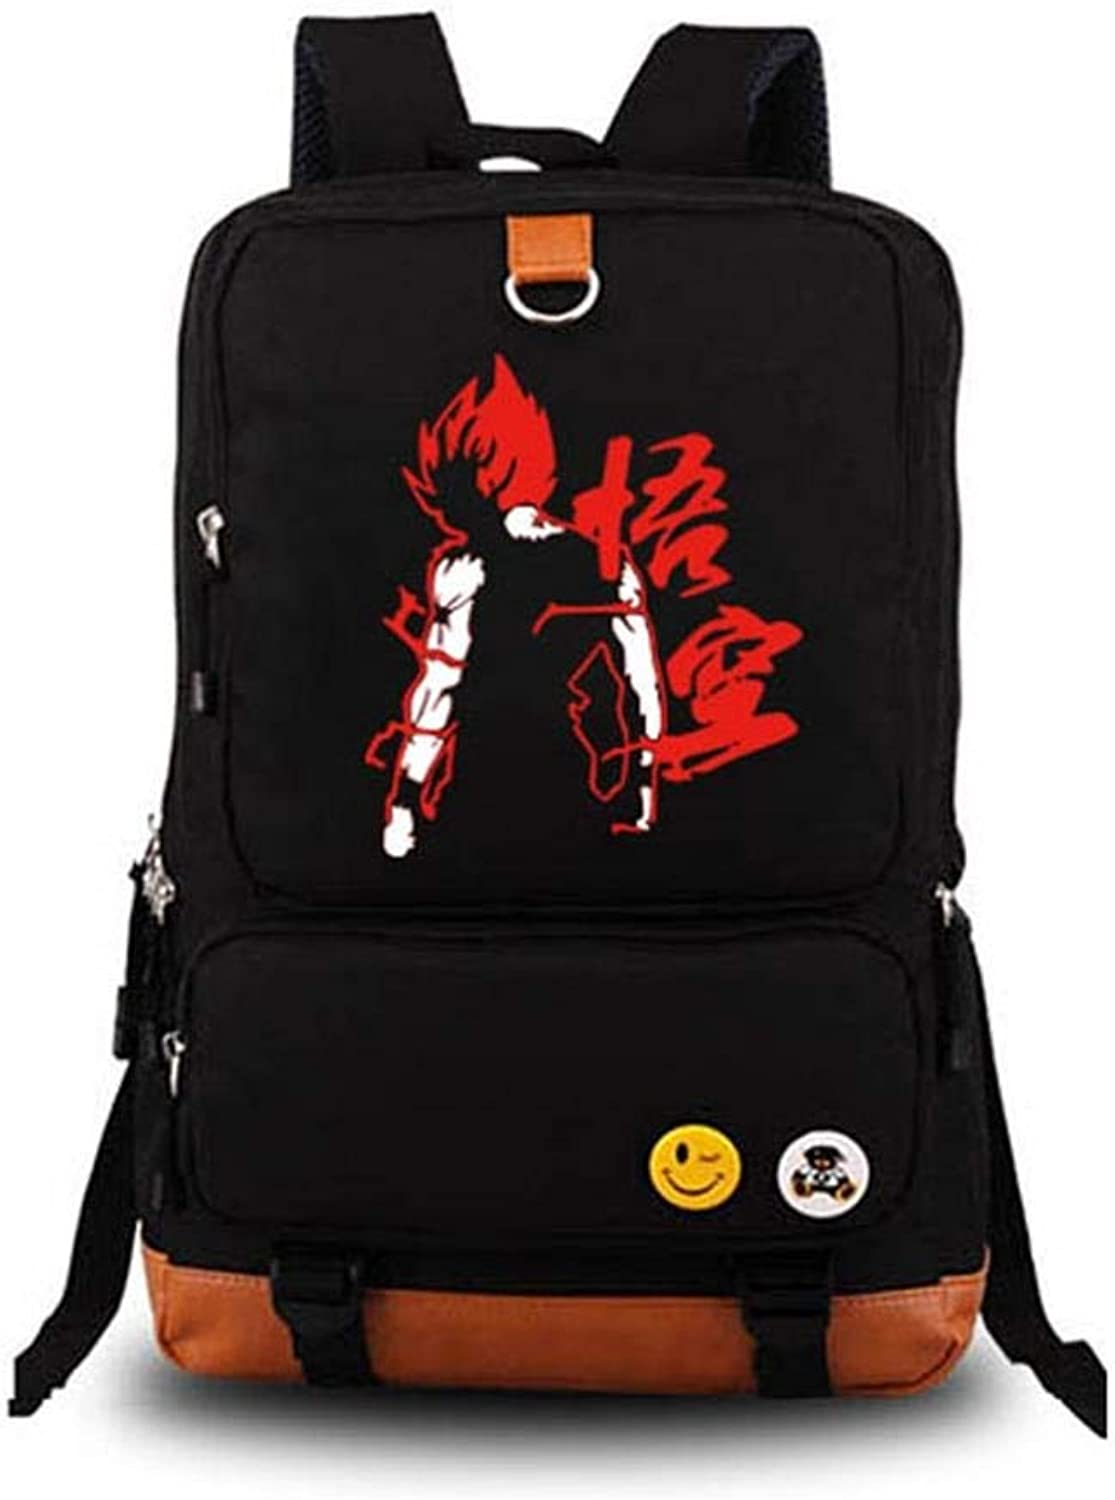 Unisex Anime Backpack Dragon Ball Printed School Bag Laptop Bag Travel Camping Daypack,Black